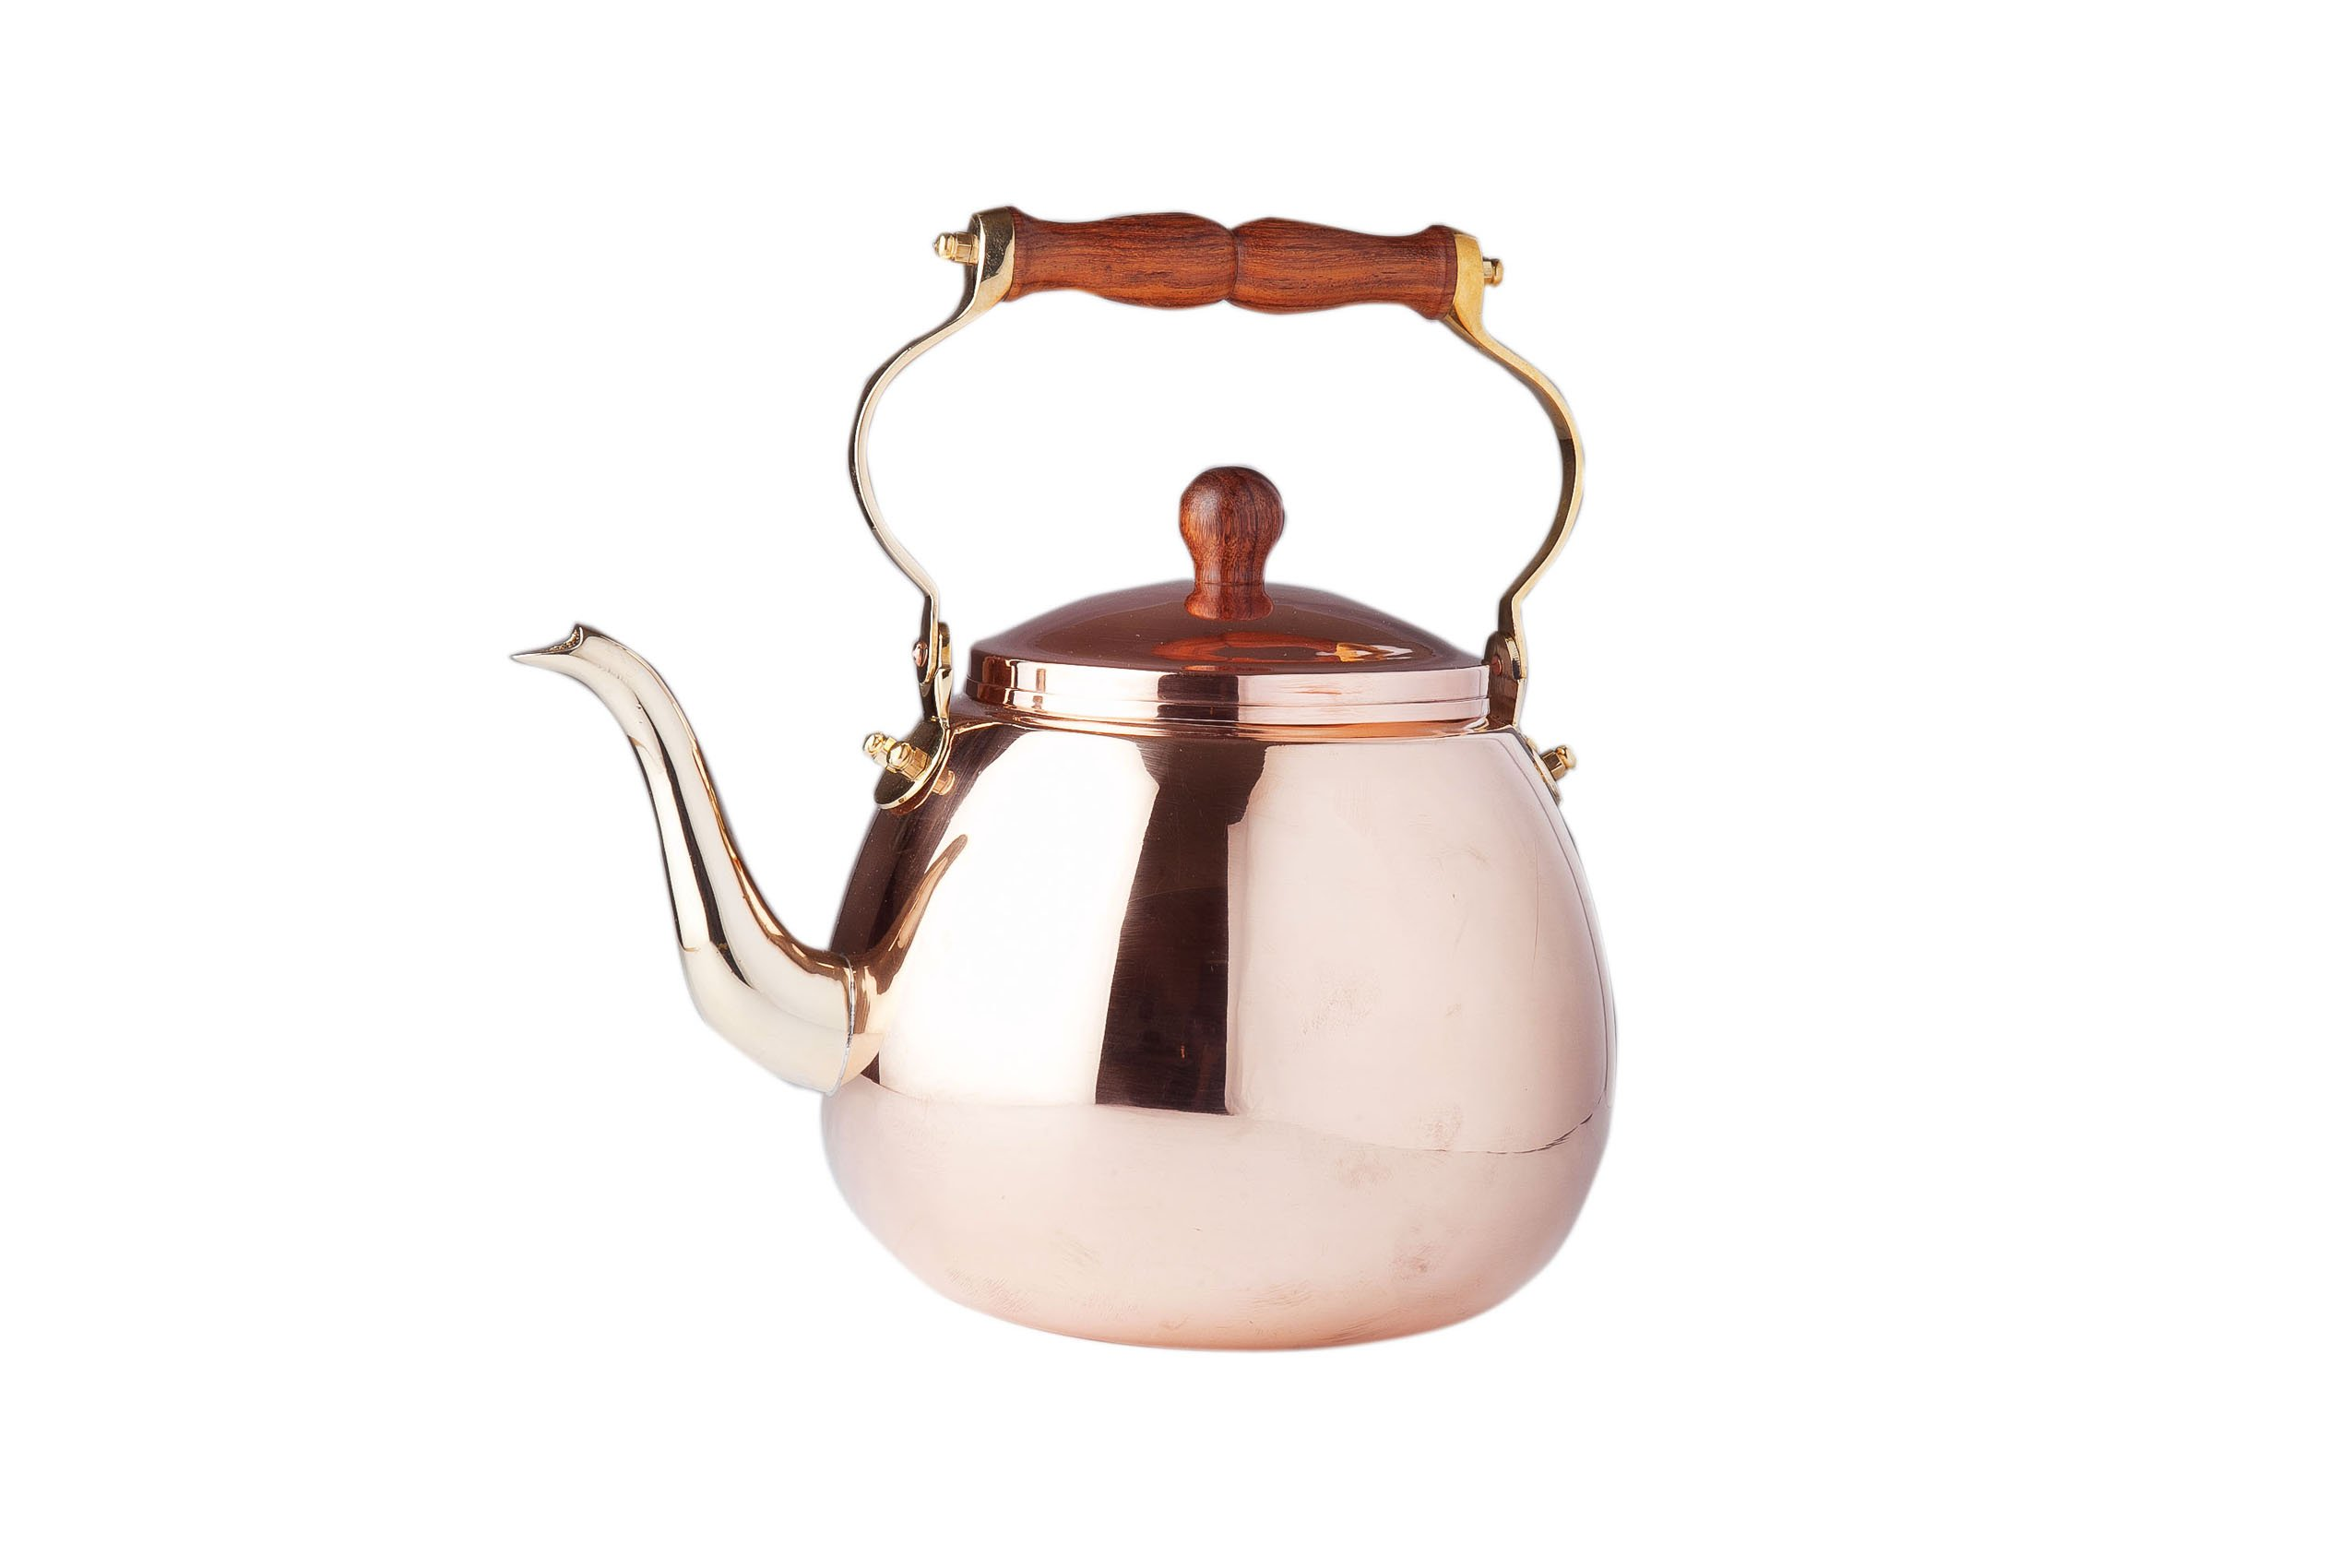 Old Dutch Solid Tea Kettle with Wood Handle, 4-Quart, Copper